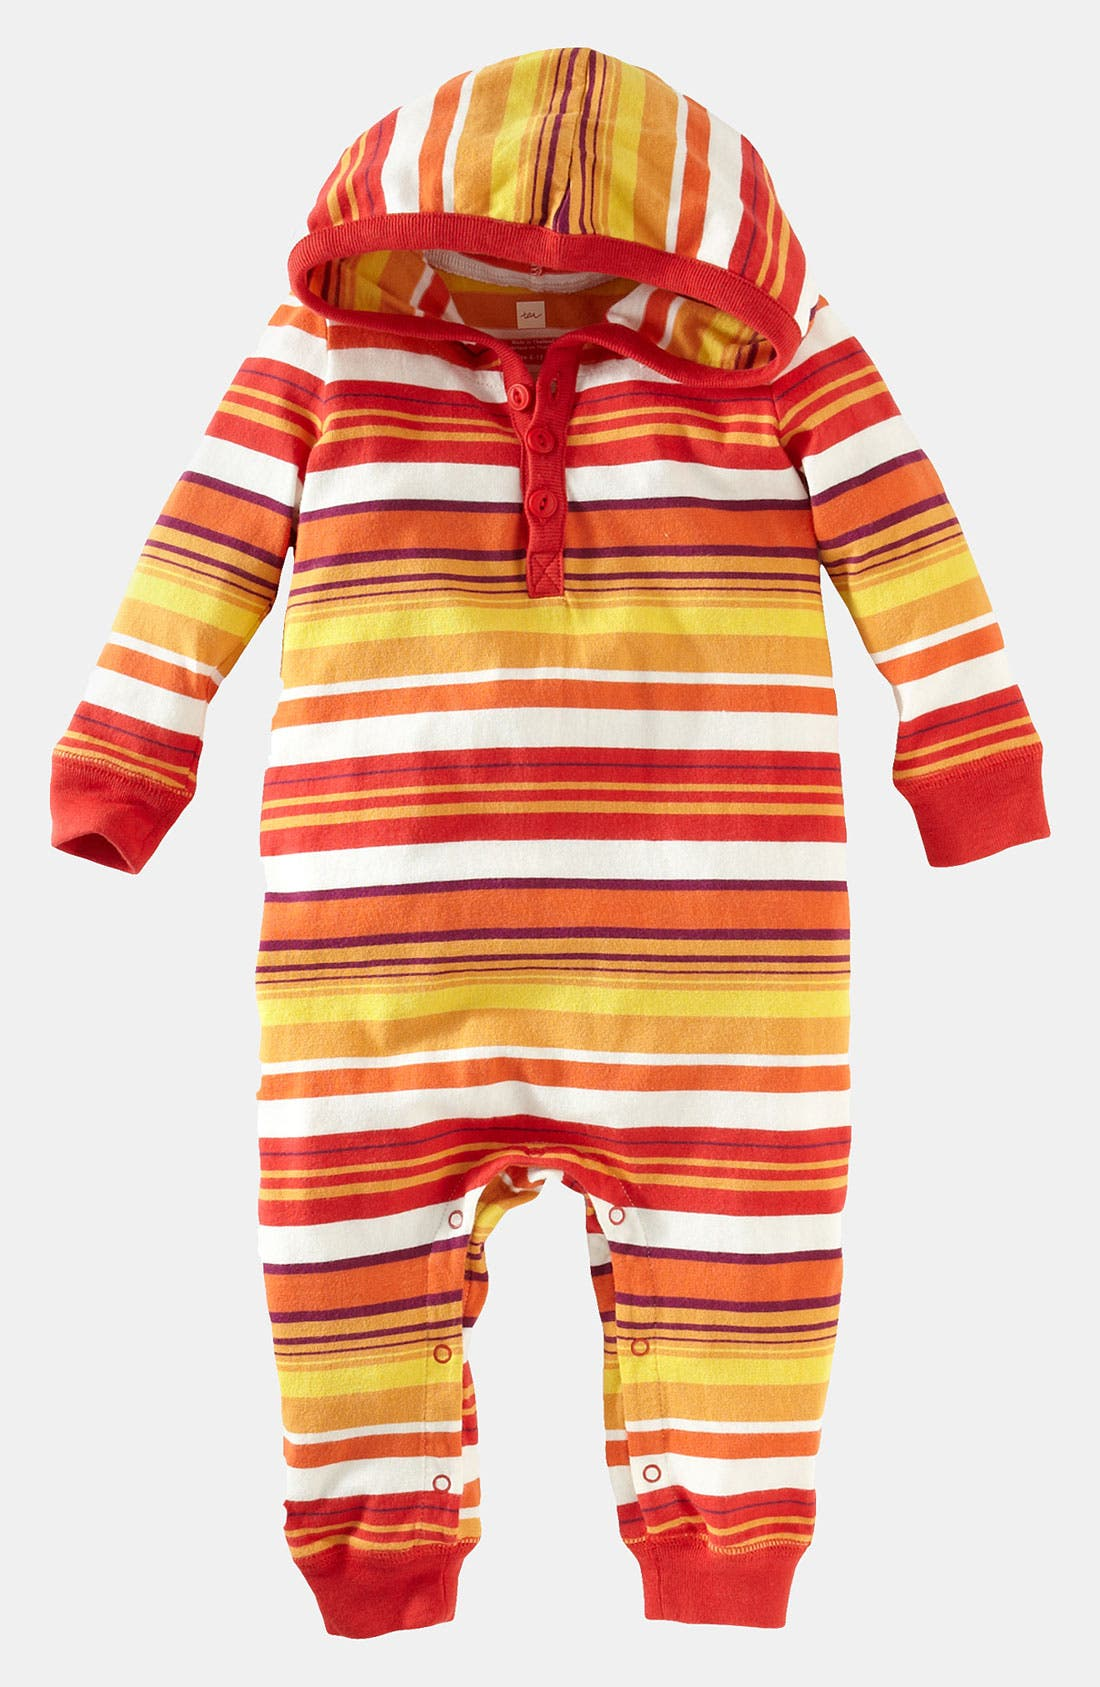 Alternate Image 1 Selected - Tea Collection 'Stripe Happy' Hooded Romper (Infant)